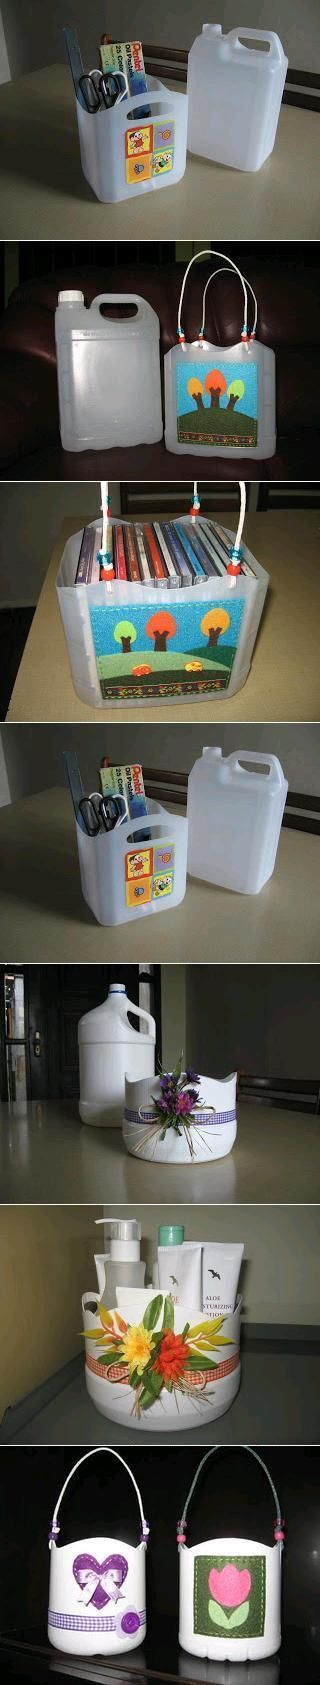 DIY Plastic Bottle Baskets DIY Projects